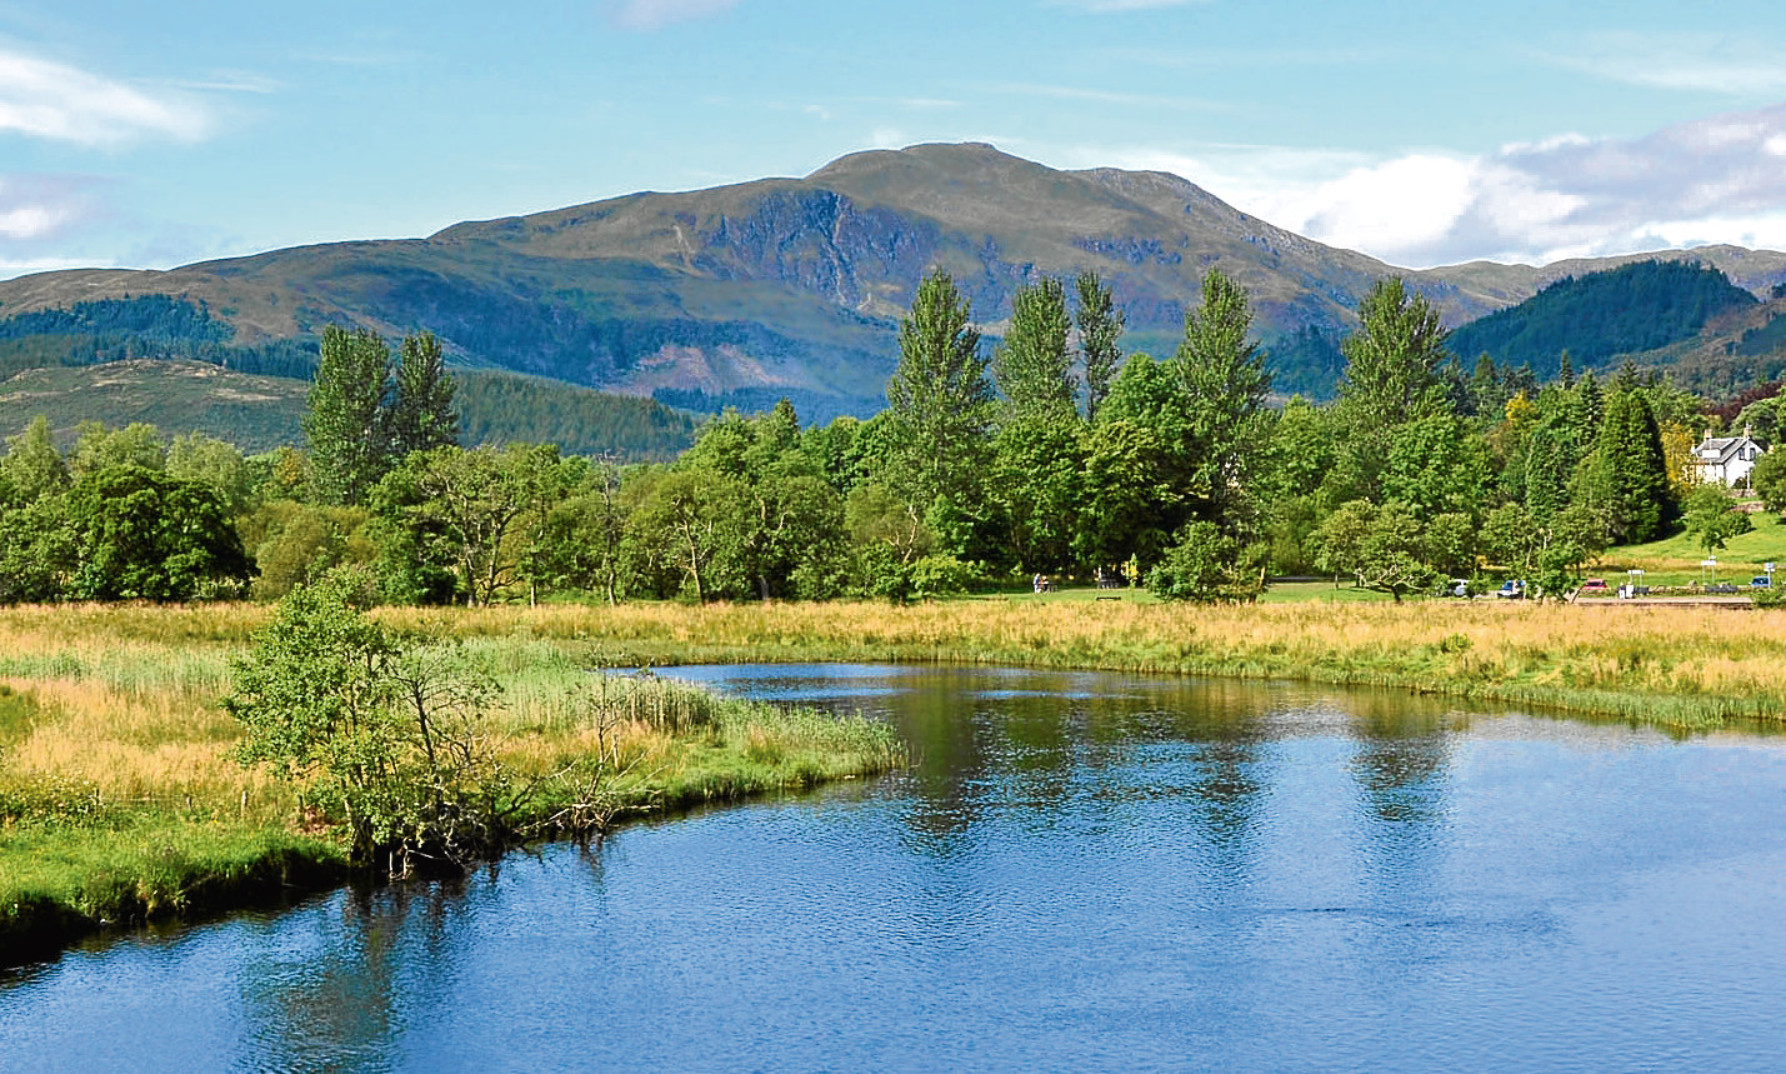 Ben Ledi, which formed the backdrop to a day spent observing a river in the Trossachs and listening to its sounds.